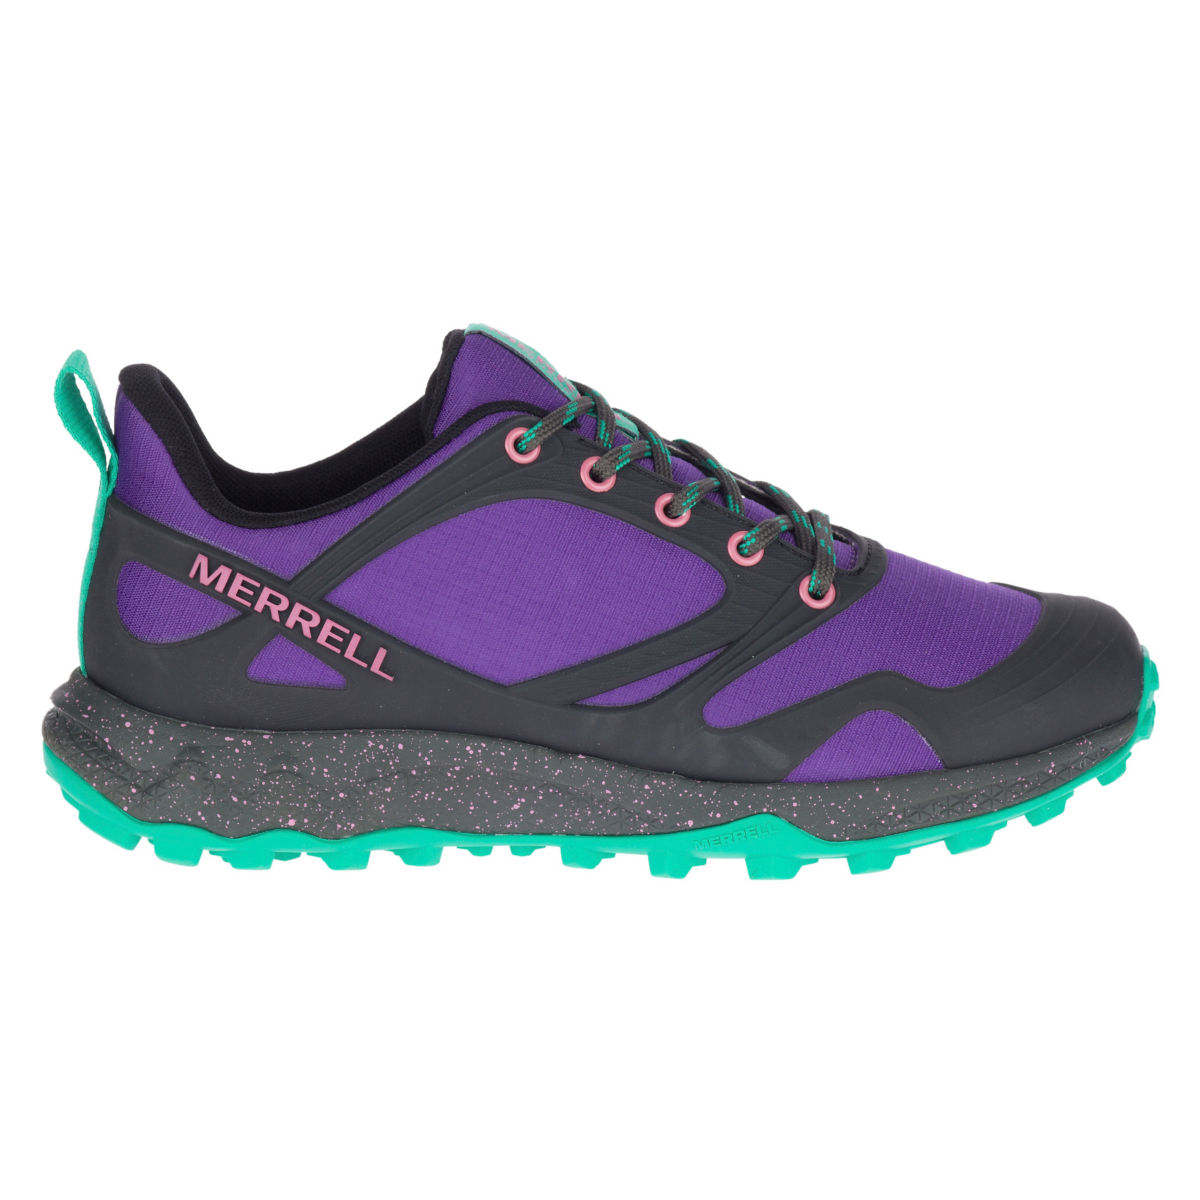 Merrell Altalight Hiking Shoes - image number 0